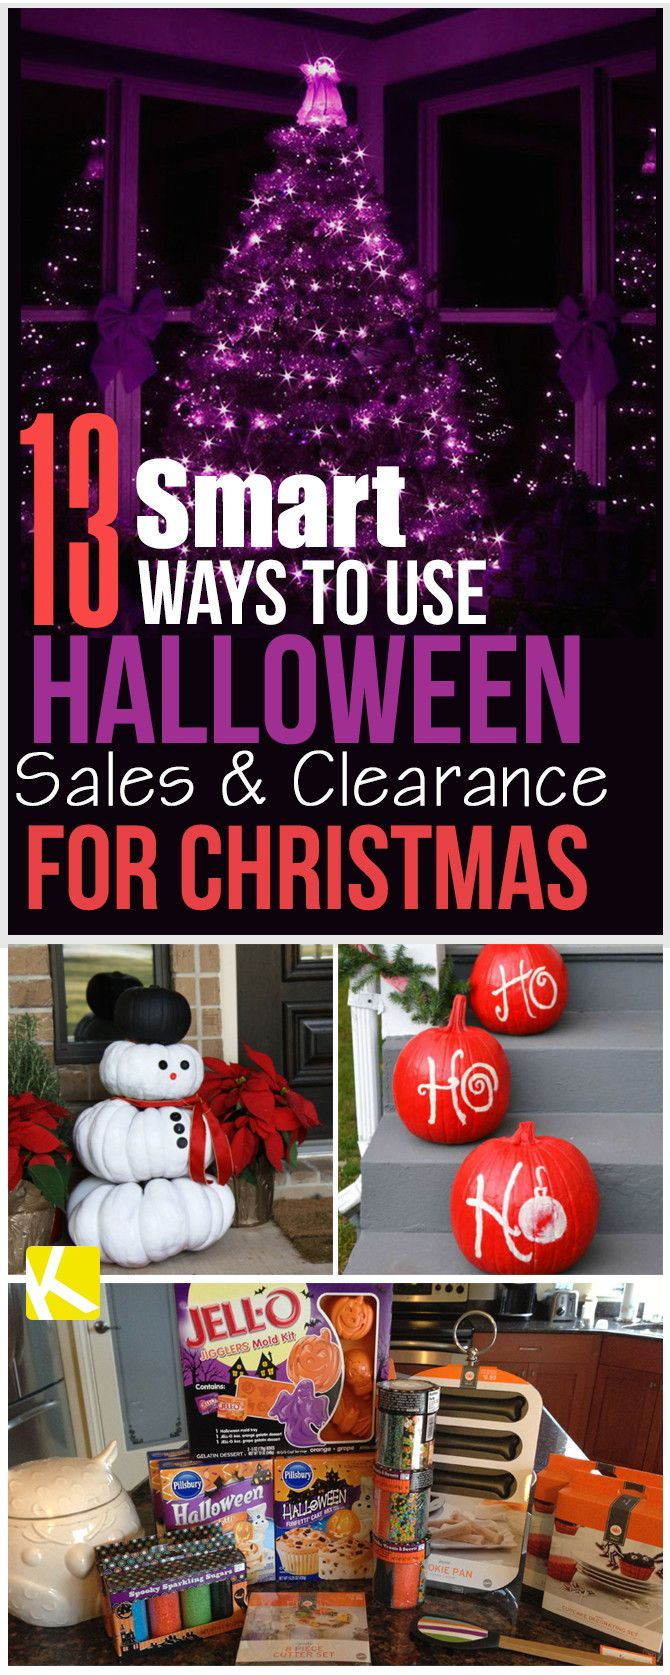 For many, the Halloween clearance shelves are a place to stock up for the next year, but we have 13 tips on how you can...